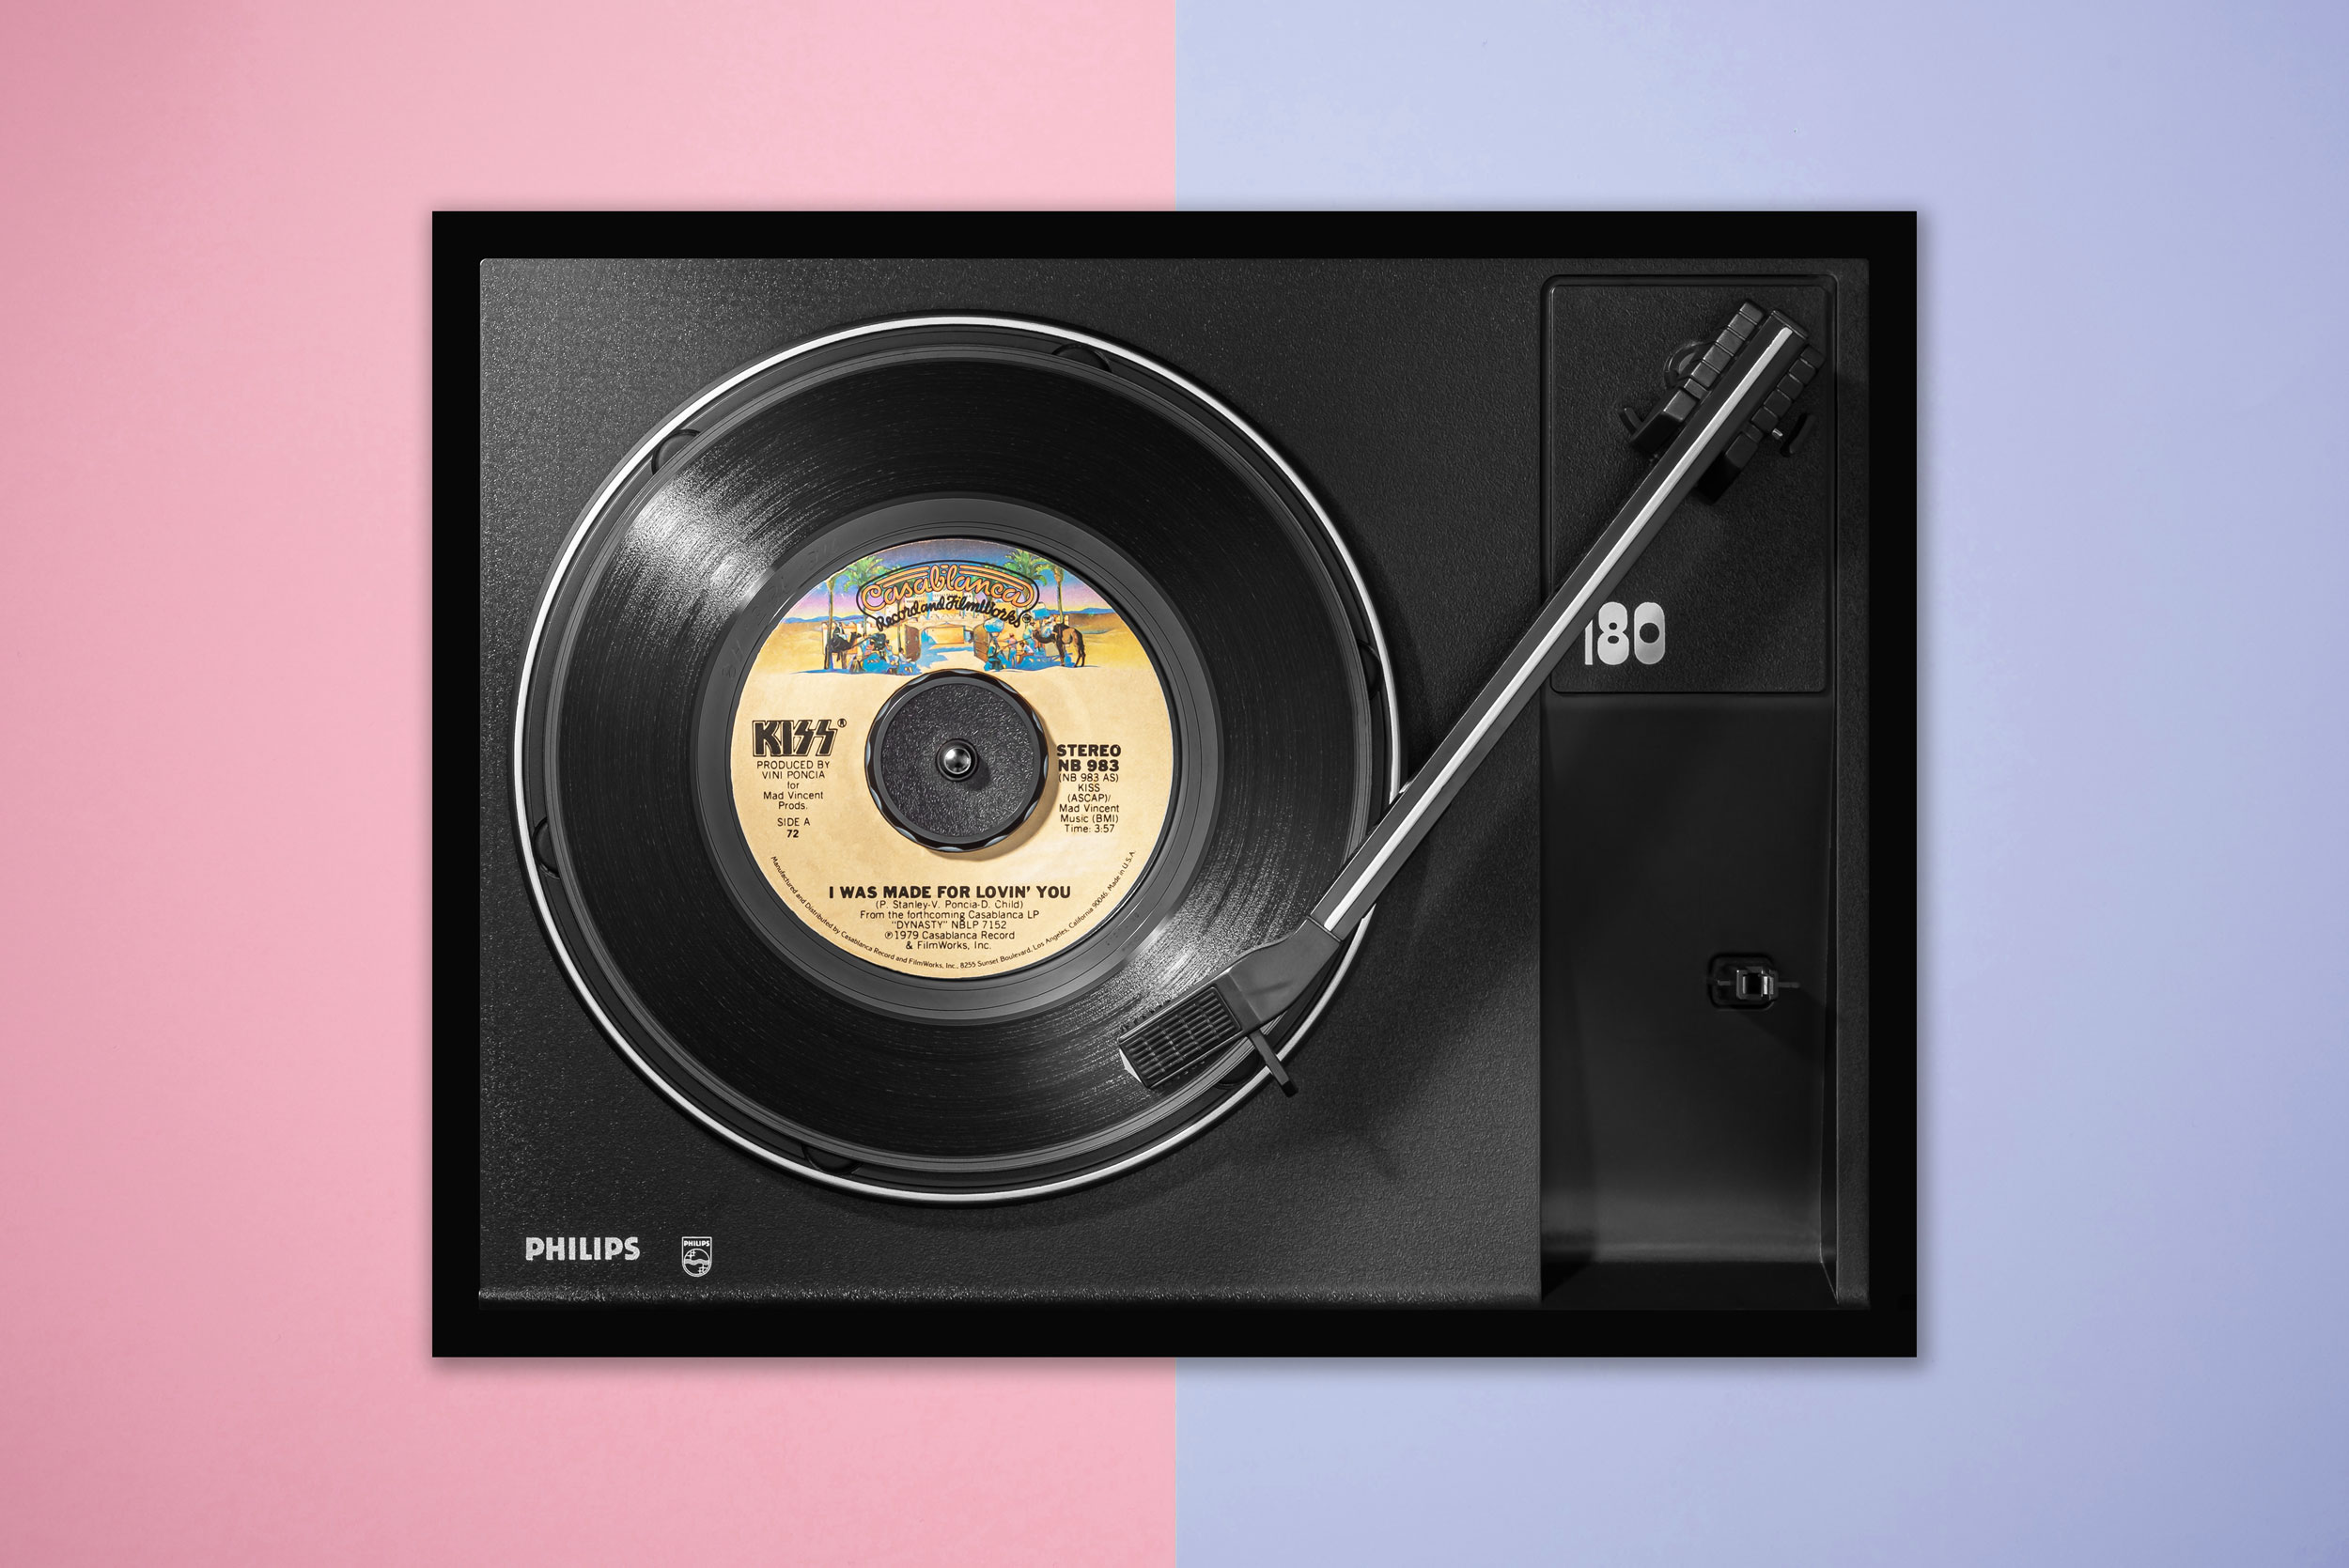 Vinylography No. 15 Kiss I was made for loving you on Philips